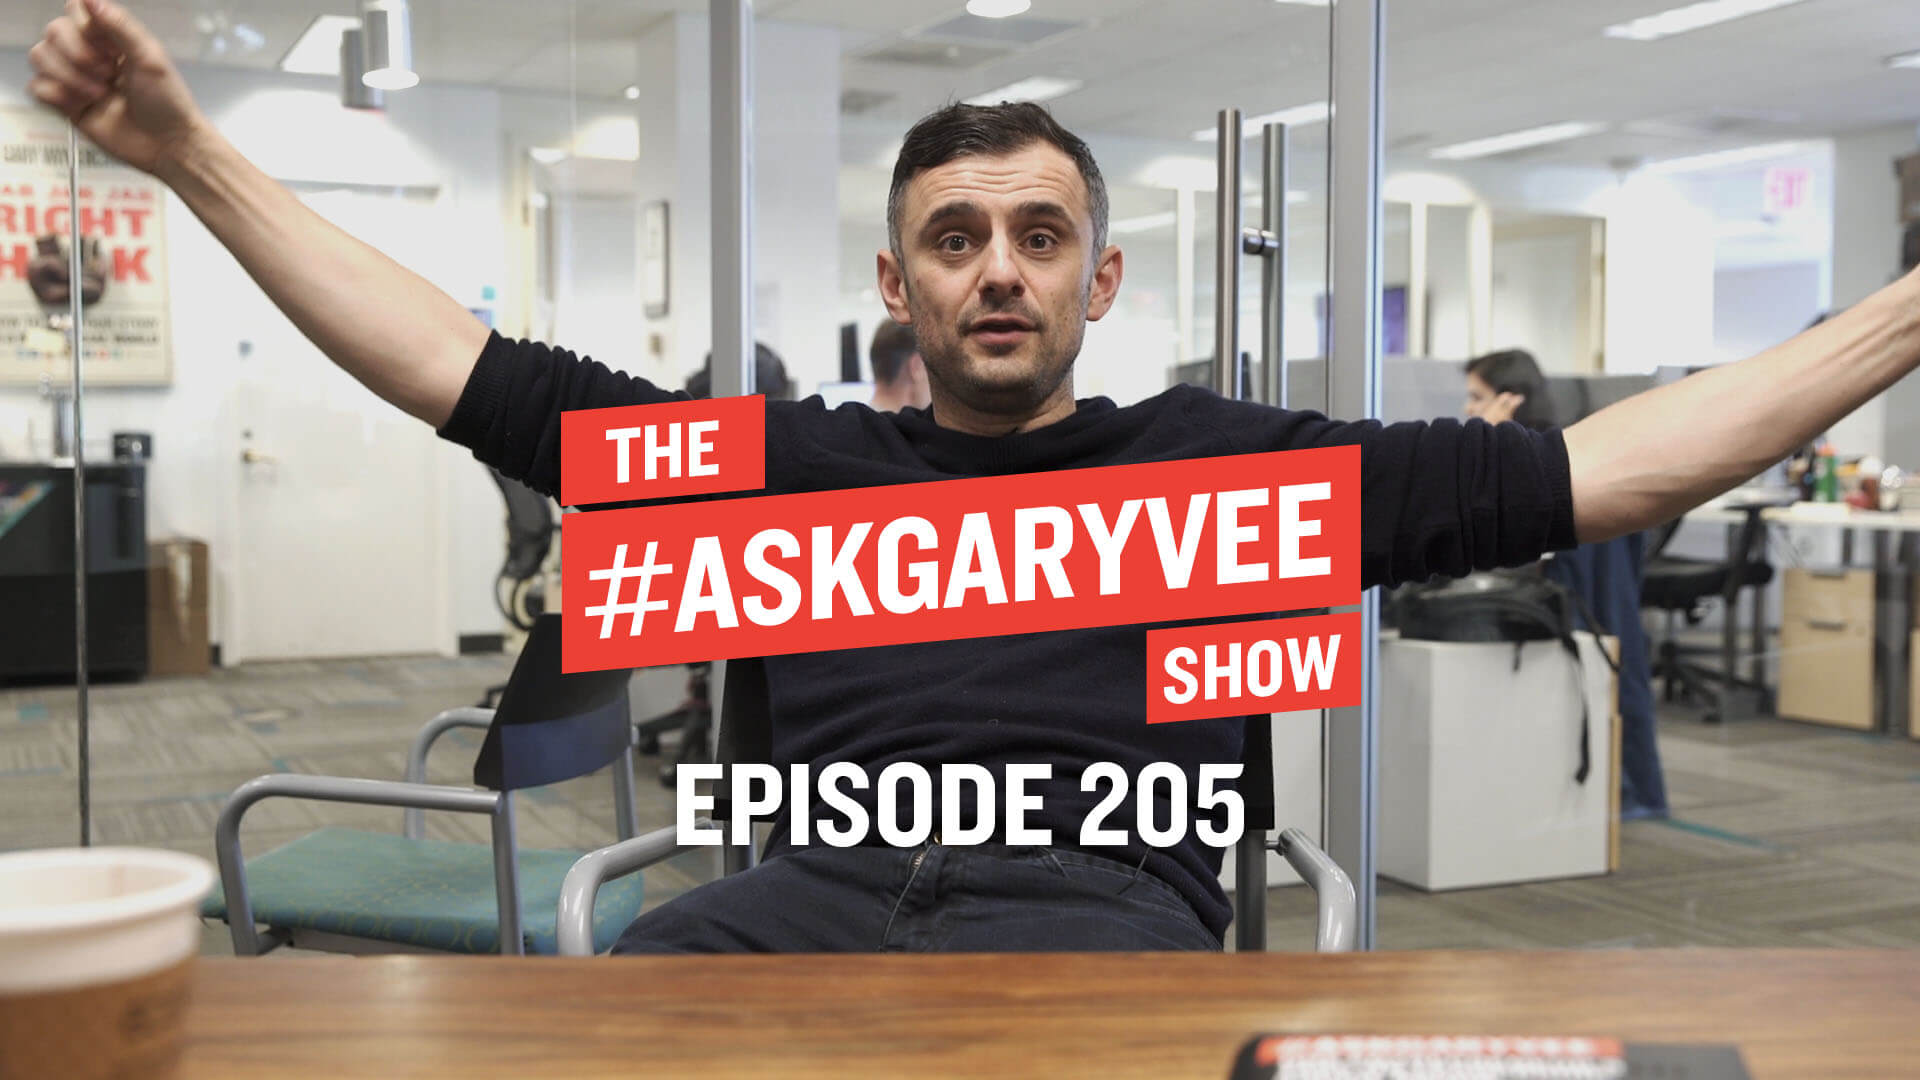 The AskGaryVee Show